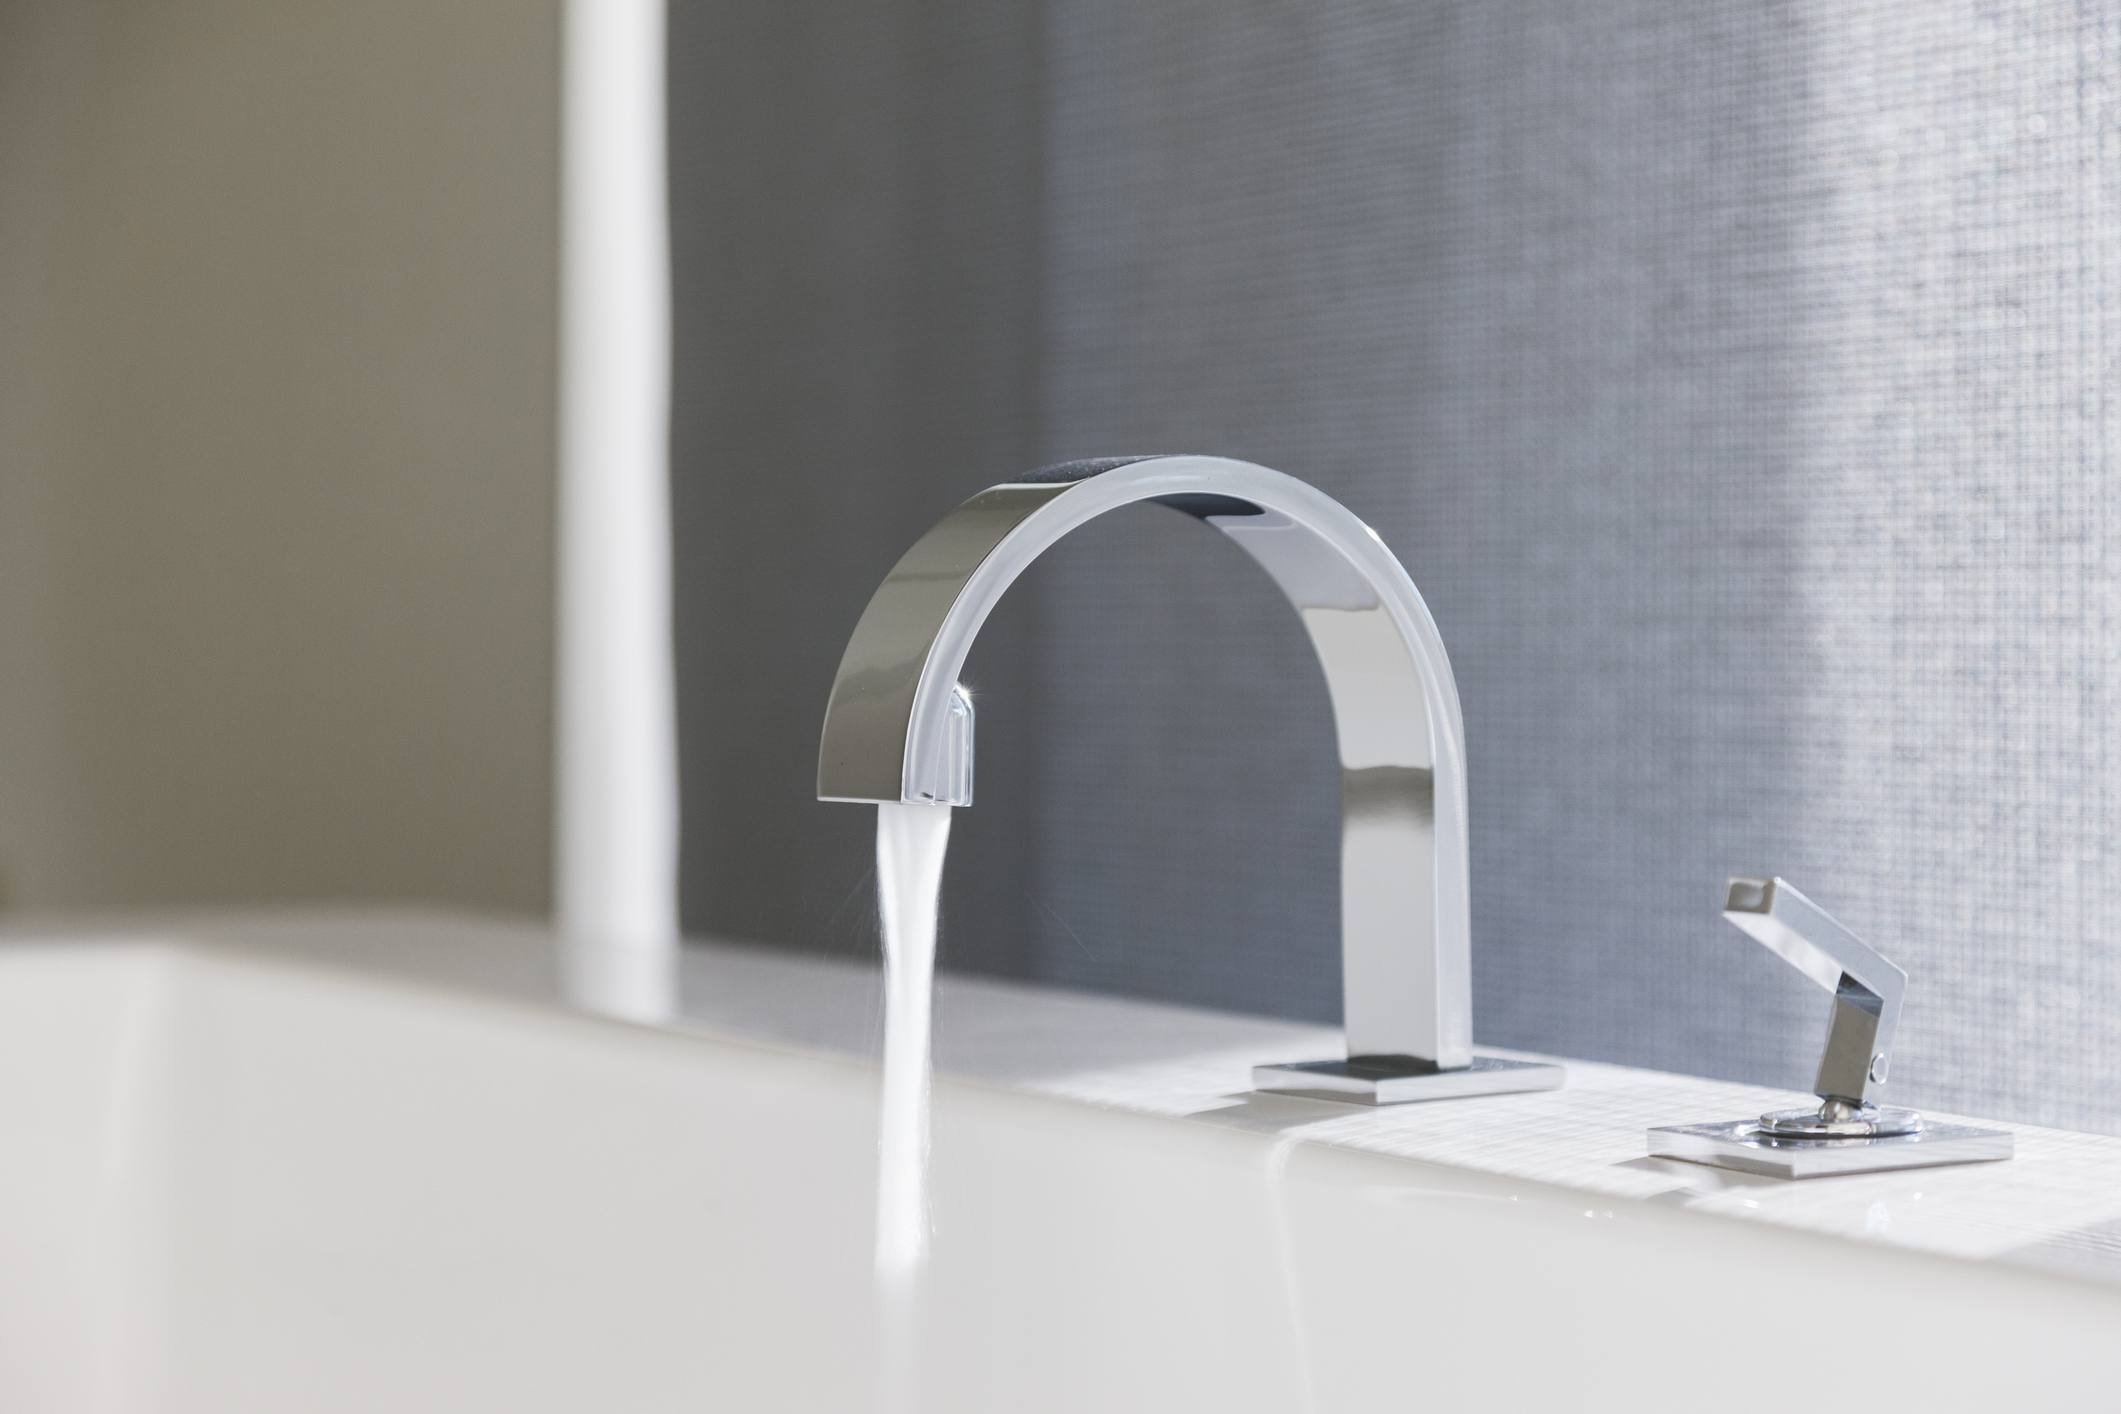 How to Fix Low Water Pressure in Your Home